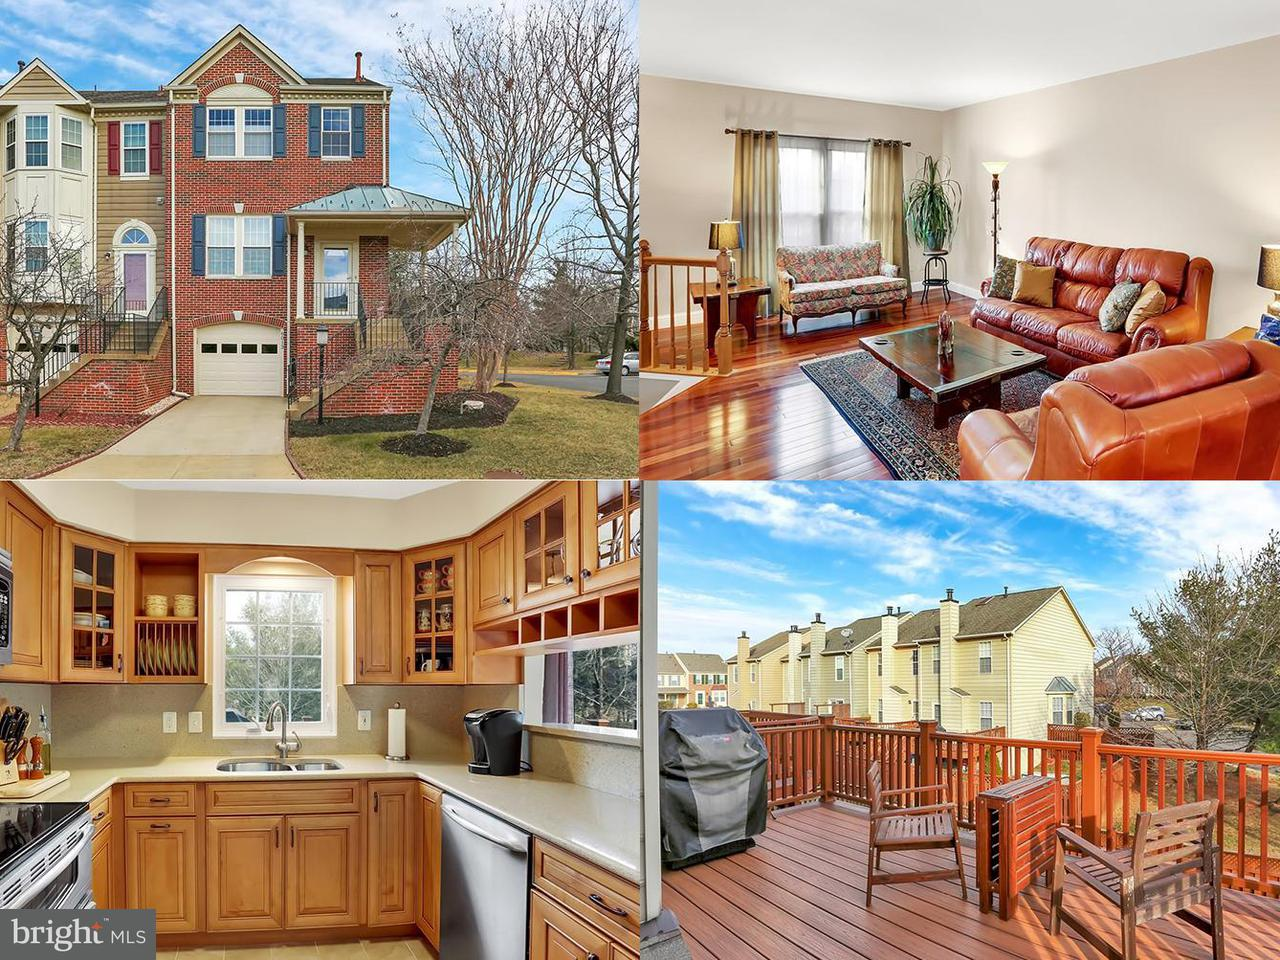 Additional photo for property listing at 6013 Kestner Circle 6013 Kestner Circle Alexandria, Virginia 22315 Estados Unidos